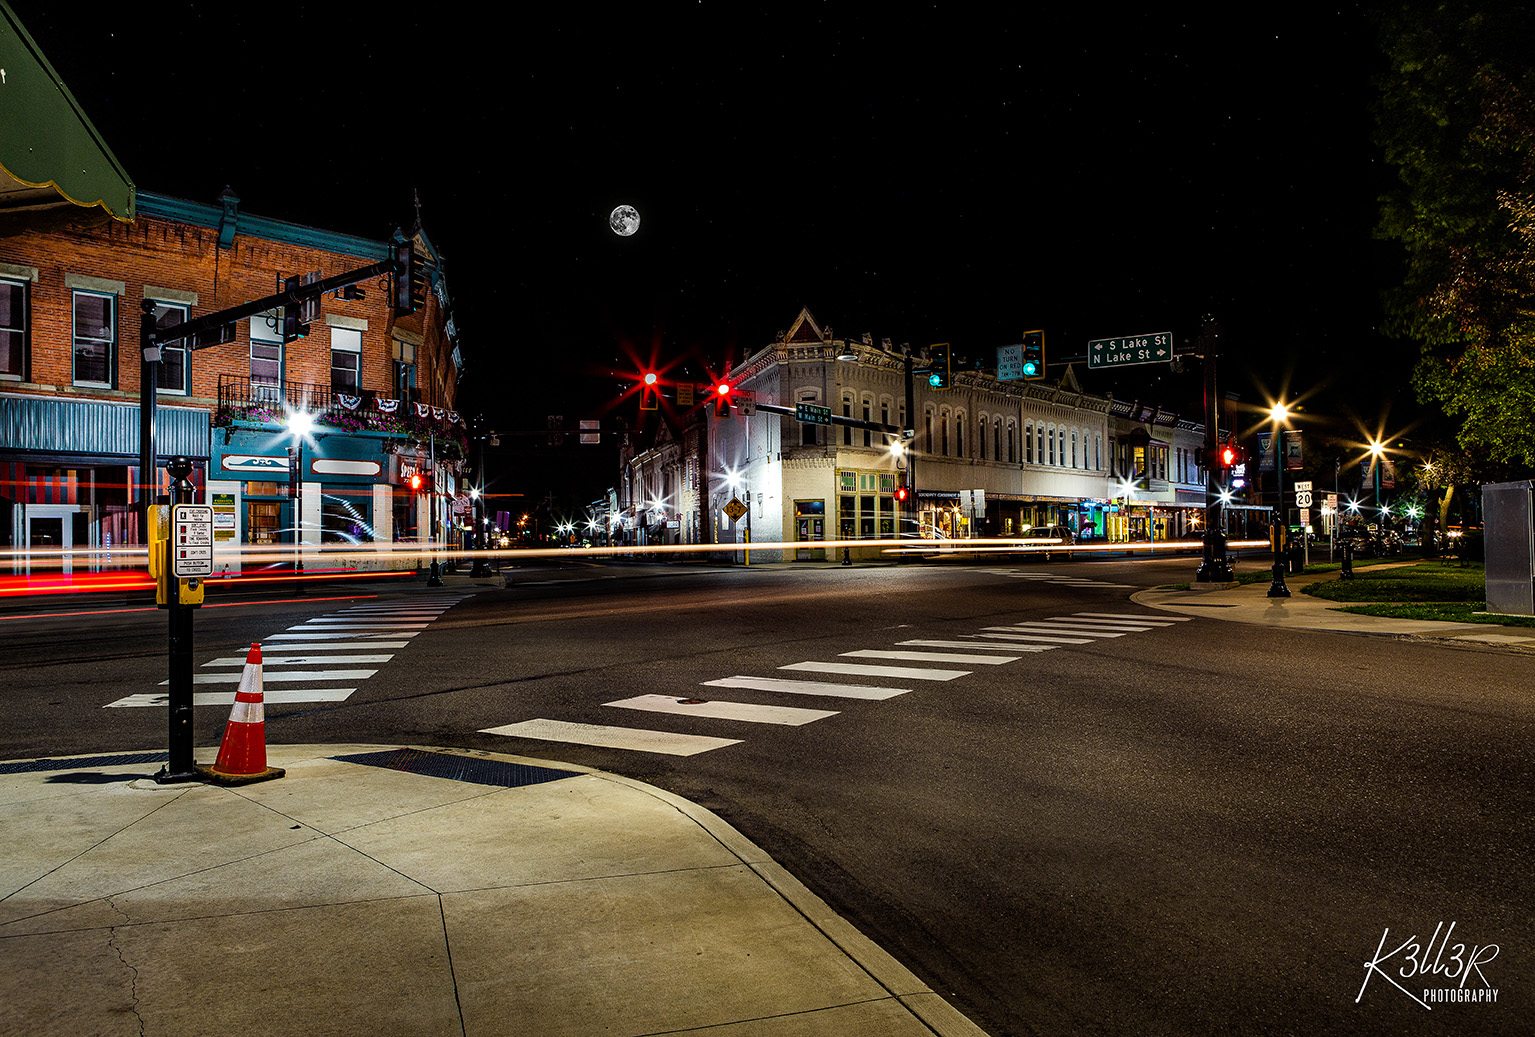 downtown North east at night with a light trail